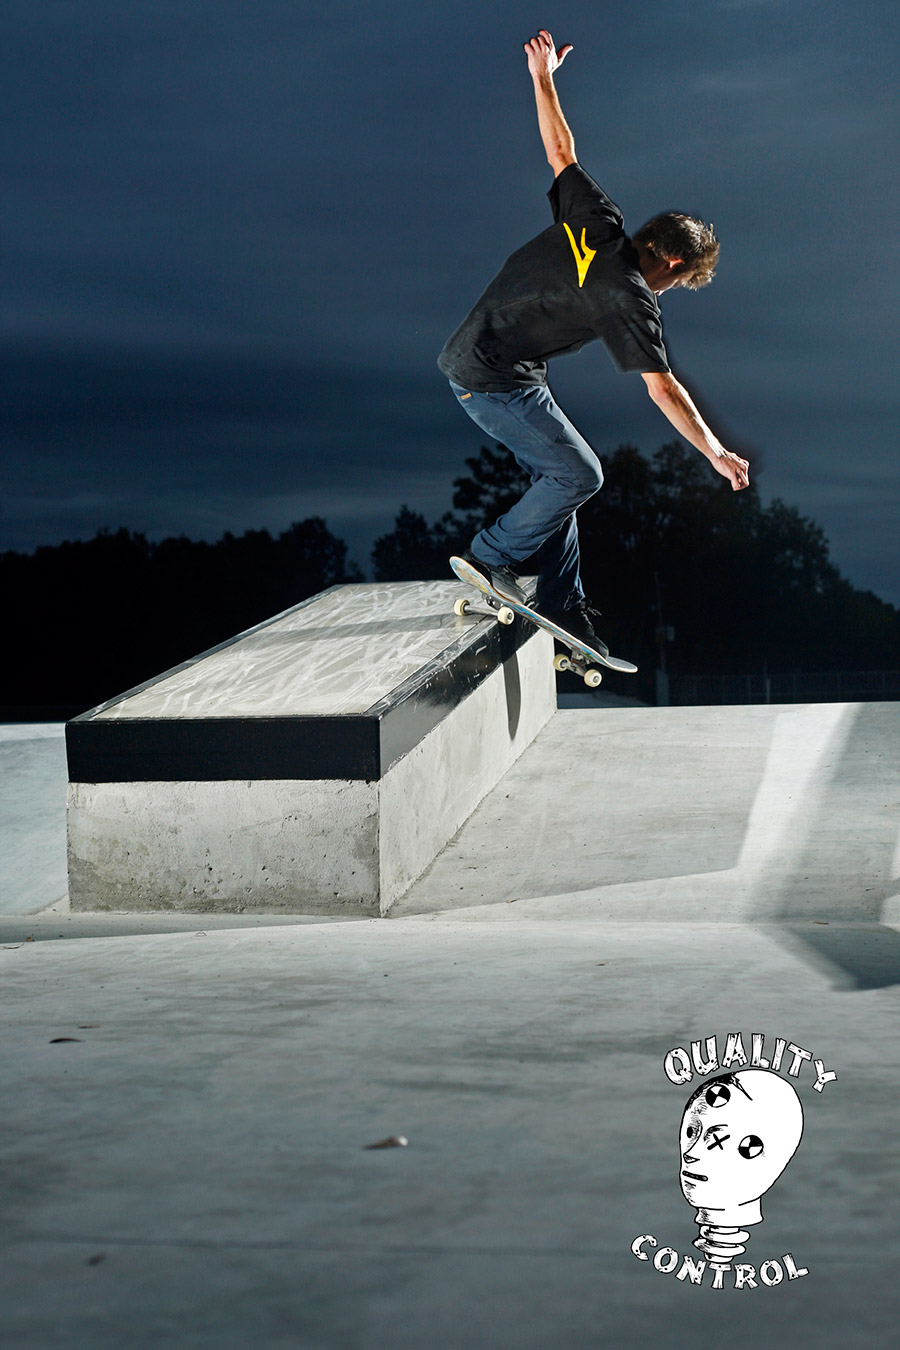 Chad Poore Smith up the ledge